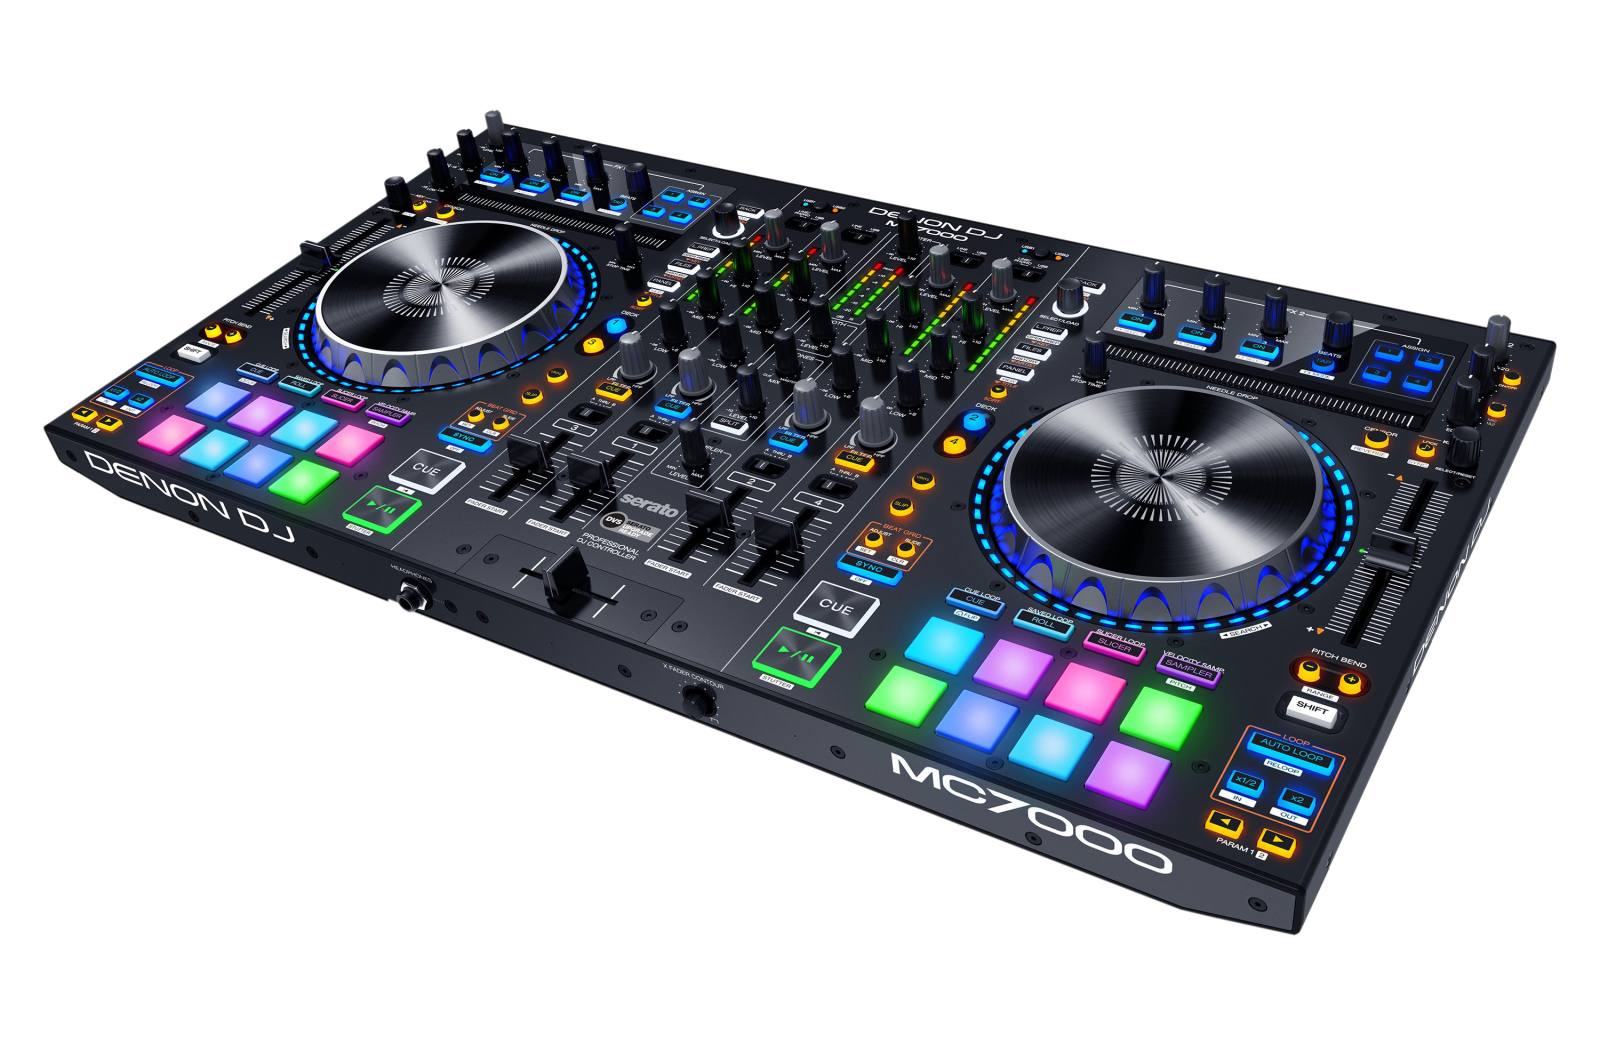 Denon DJ MC7000 - Complete Setup and Routing in Traktor Pro